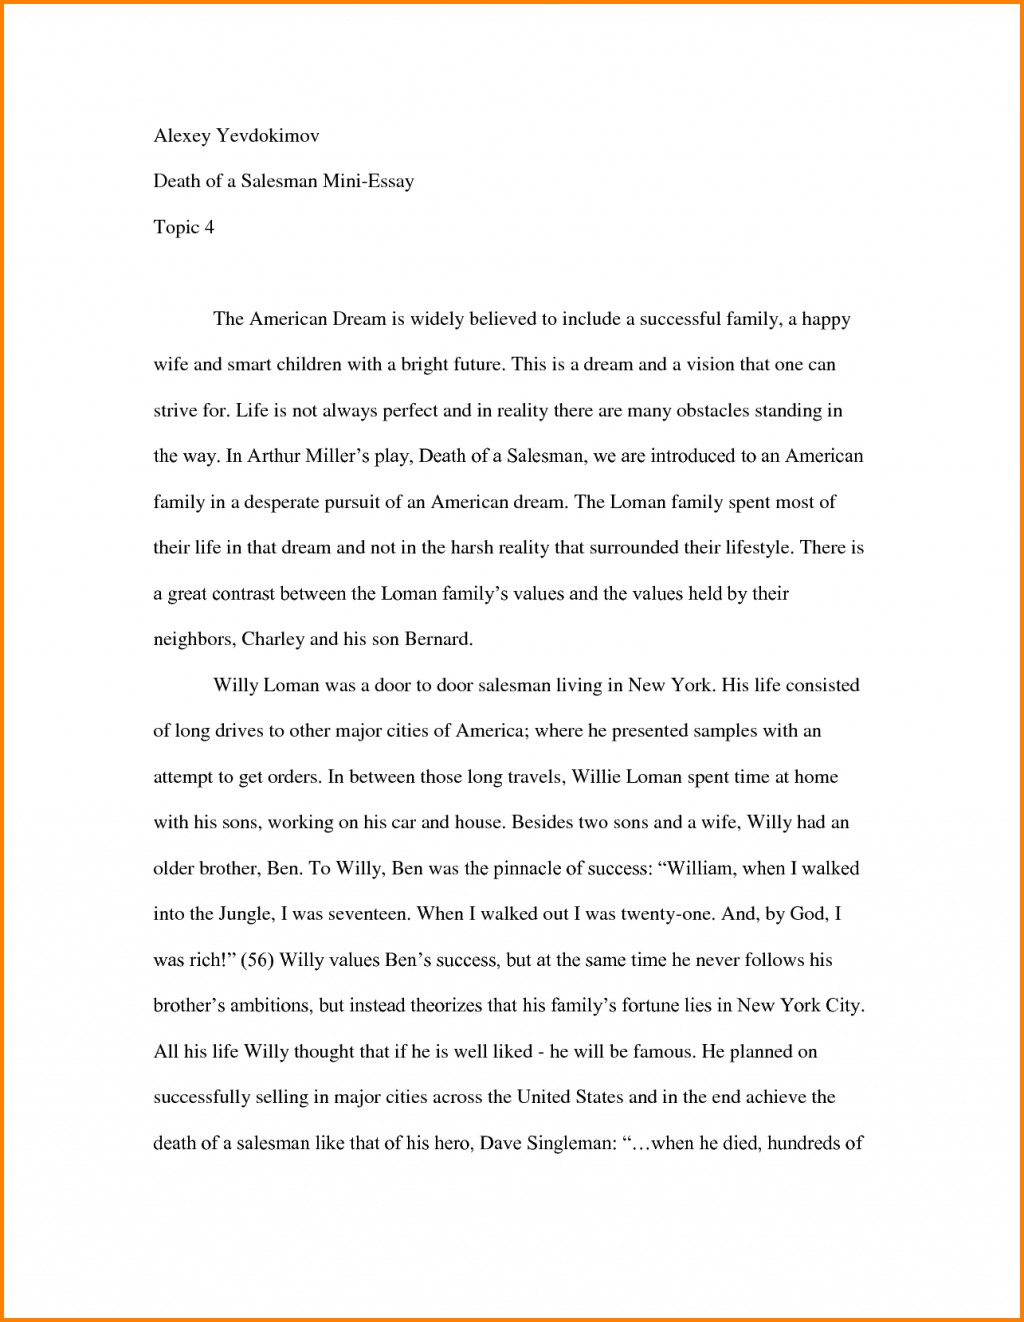 015 Essay Example How To Start An About Myself Yourself Letter Template Photo For College University Autobiography Introductory Scholarship With Quote Examples Unique Off A Job Large